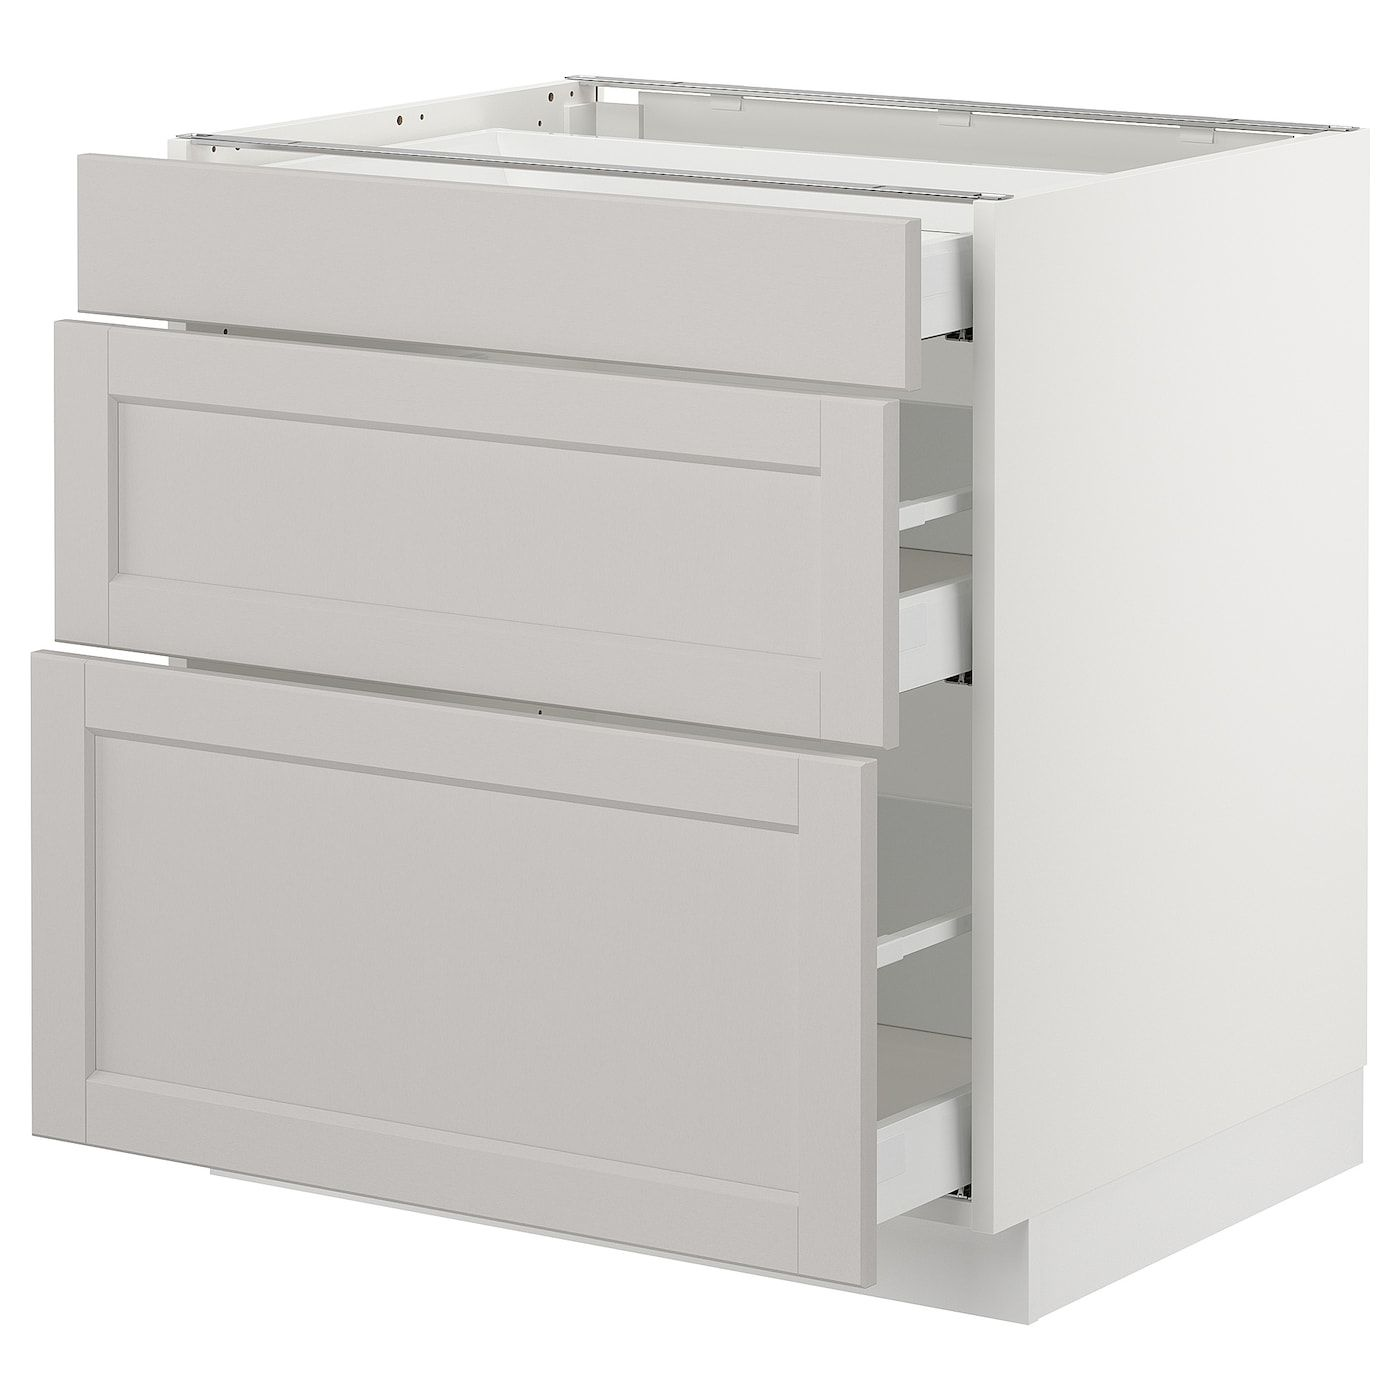 Sektion Base Cabinet With 3 Drawers White Maximera Lerhyttan Light Gray 30x24x30 Ikea In 2020 Base Cabinets Kitchen Cabinets Fronts Cabinet Fronts